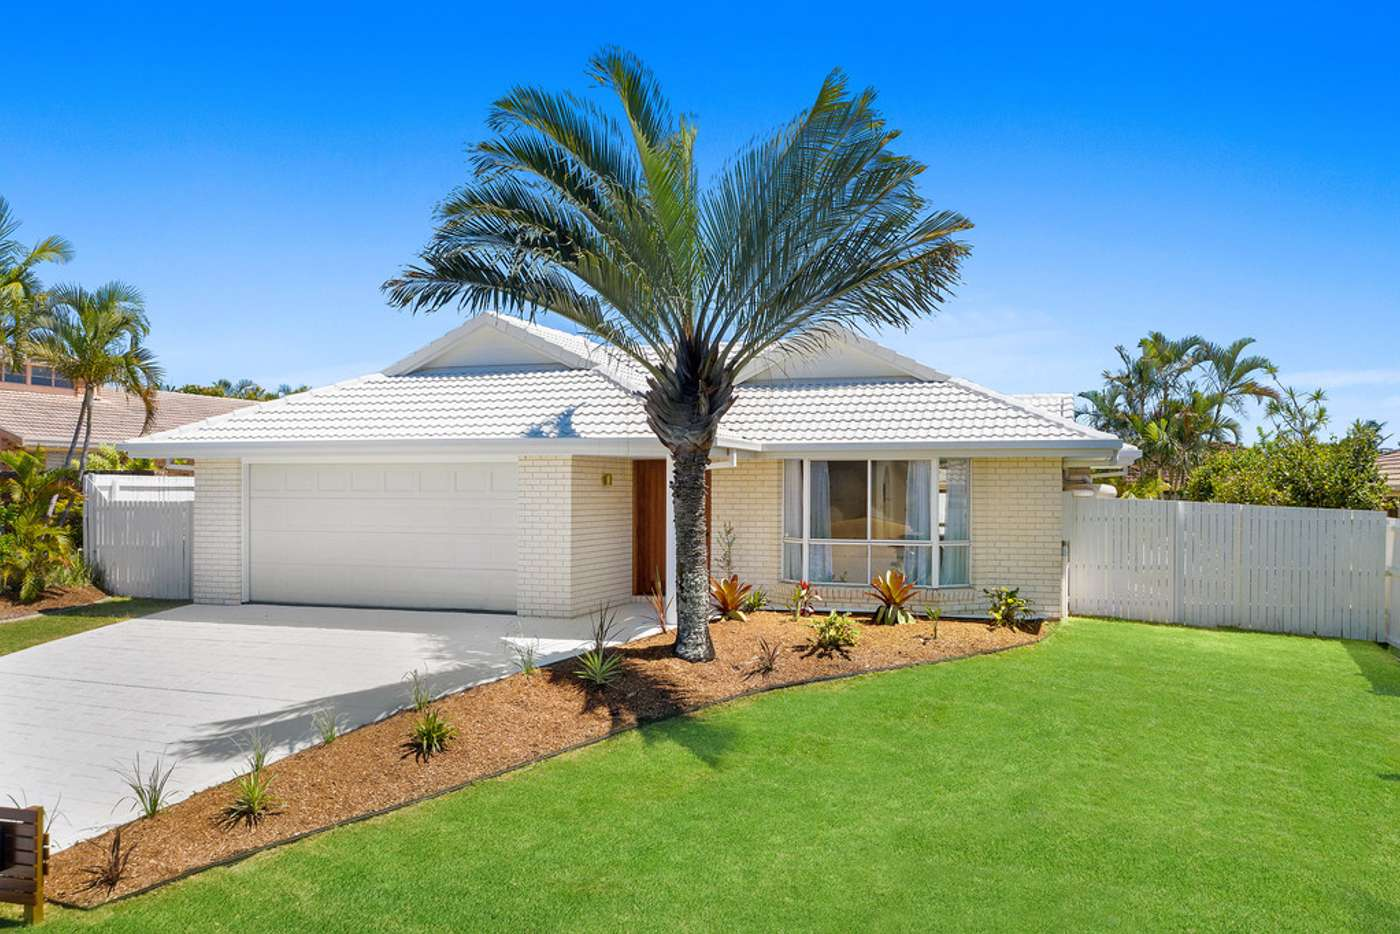 Main view of Homely house listing, 3 Silkyoak Court, Burleigh Waters QLD 4220